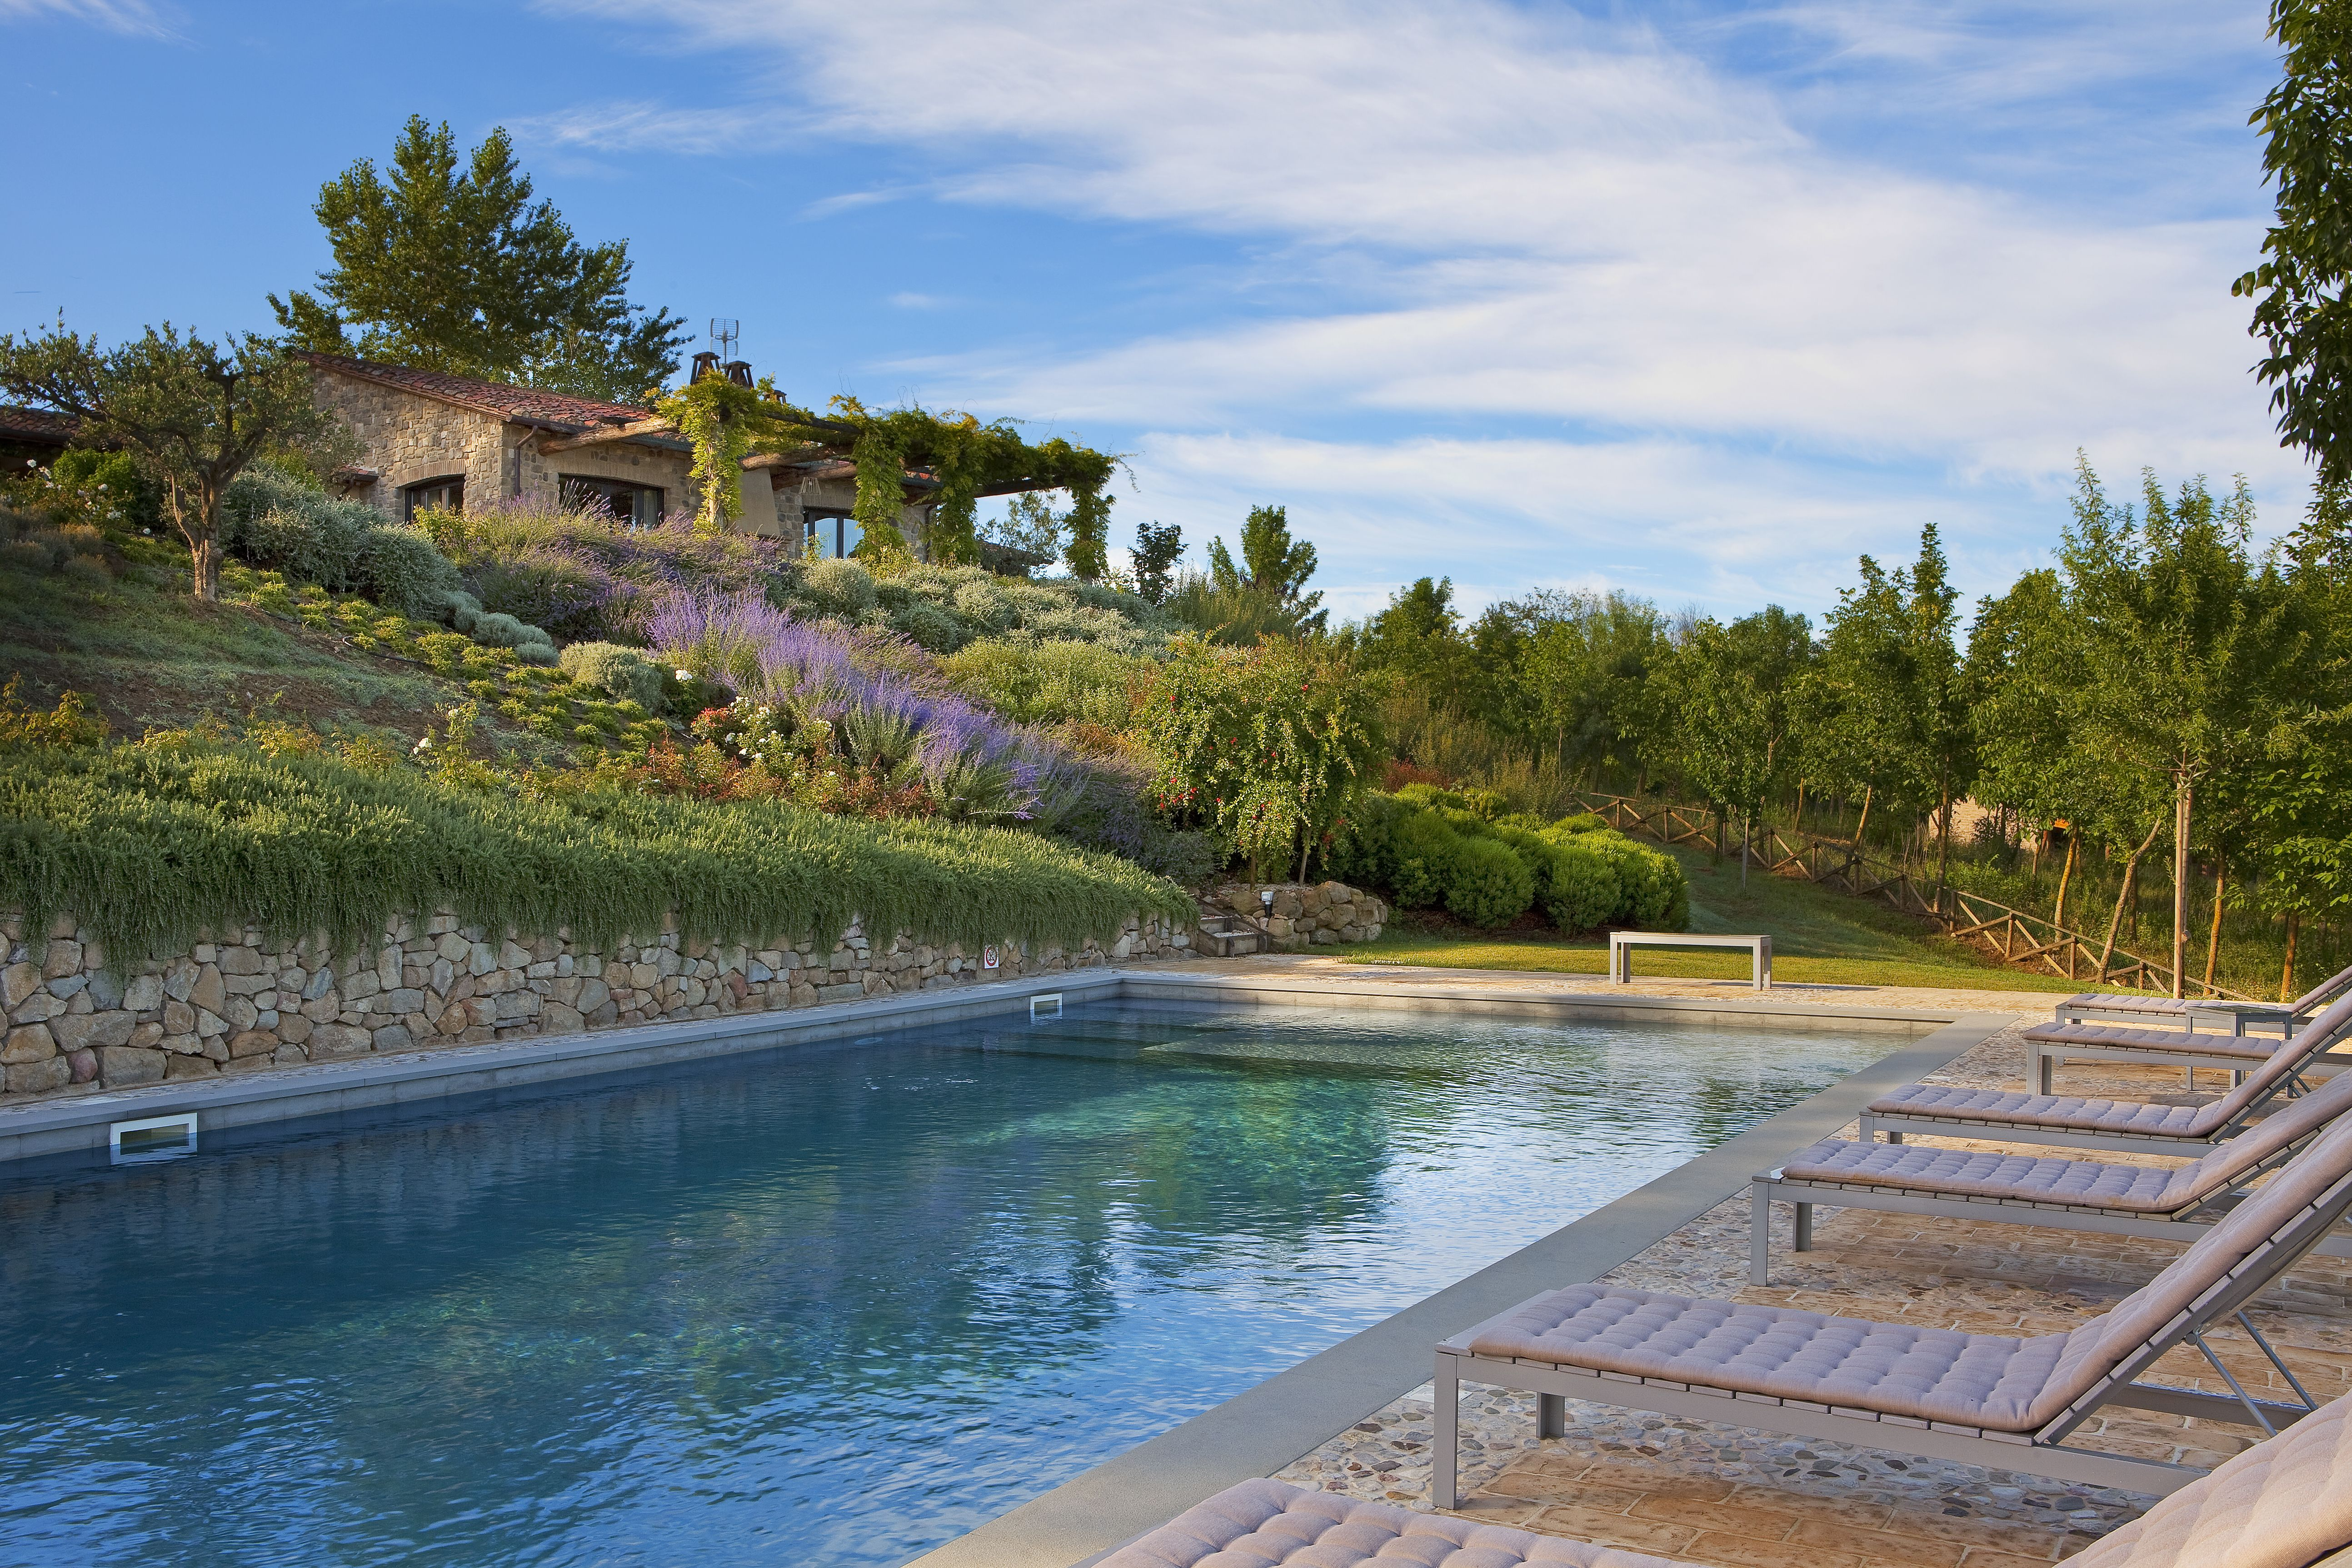 La Segreta, beautiful house and farmhouse to rent in Umbria, Italy. For 10 people. 6000$ a week in high season. Dreamy pool.